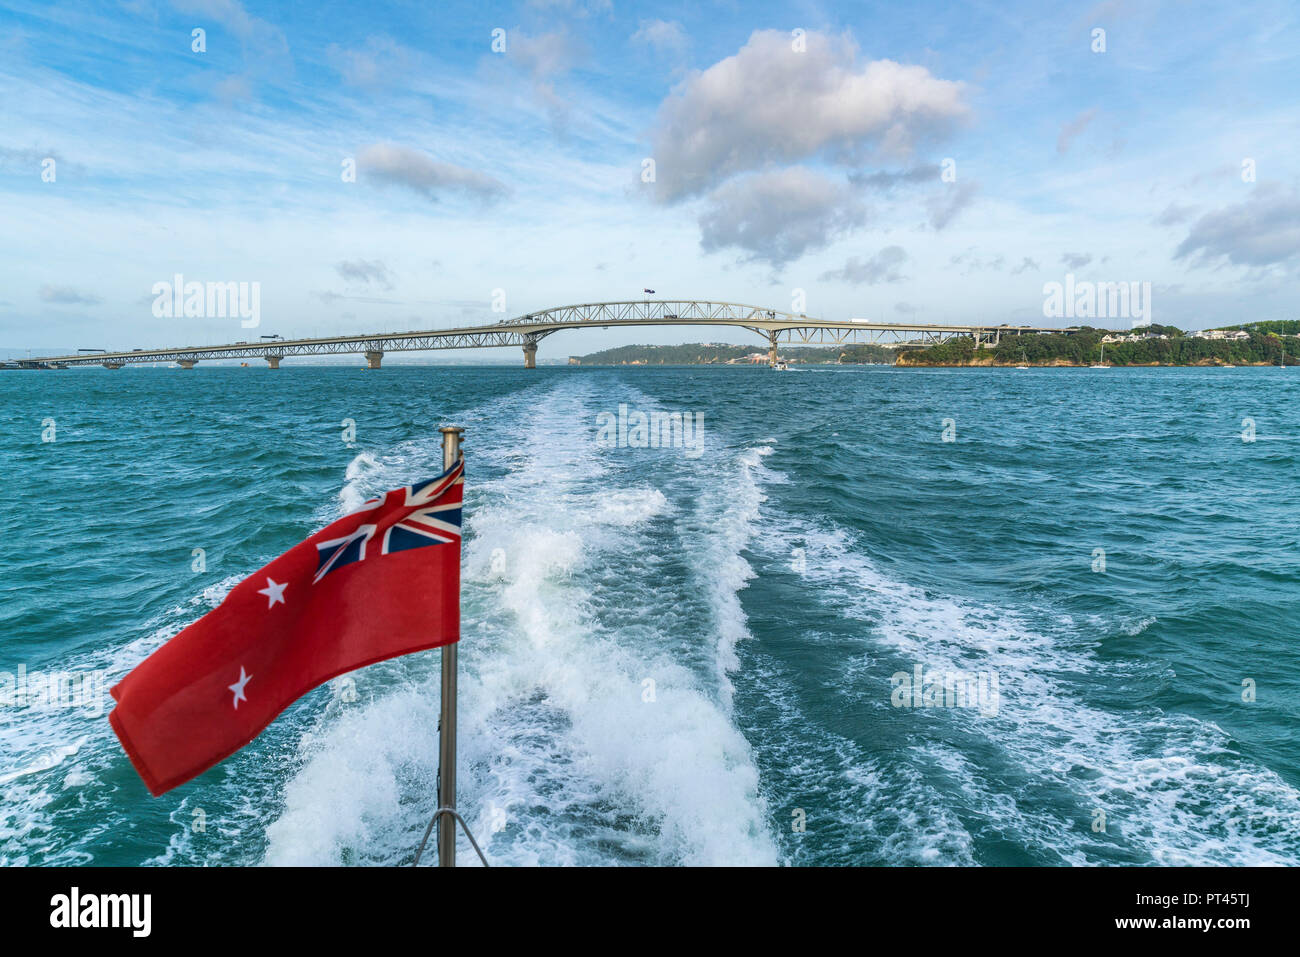 The New Zealand Red Ensign and Auckland Harbour Bridge in the background, Auckland City, Auckland region, North Island, New Zealand, - Stock Image